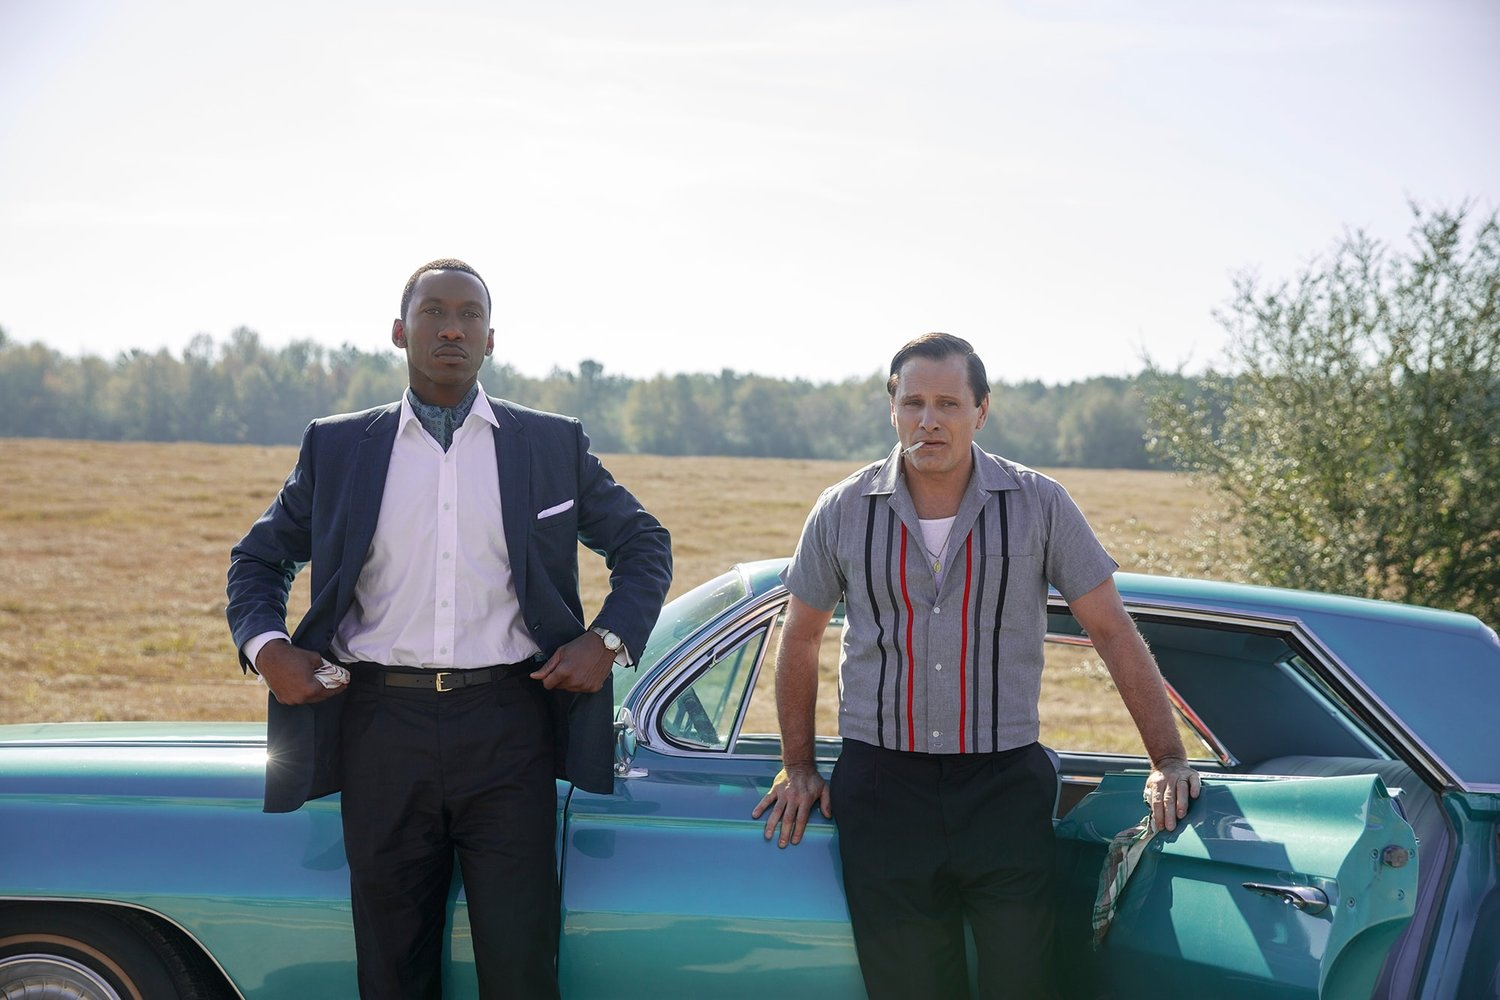 Mahershala Ali (left) and Viggo Mortensen star in the film 'Green Book'